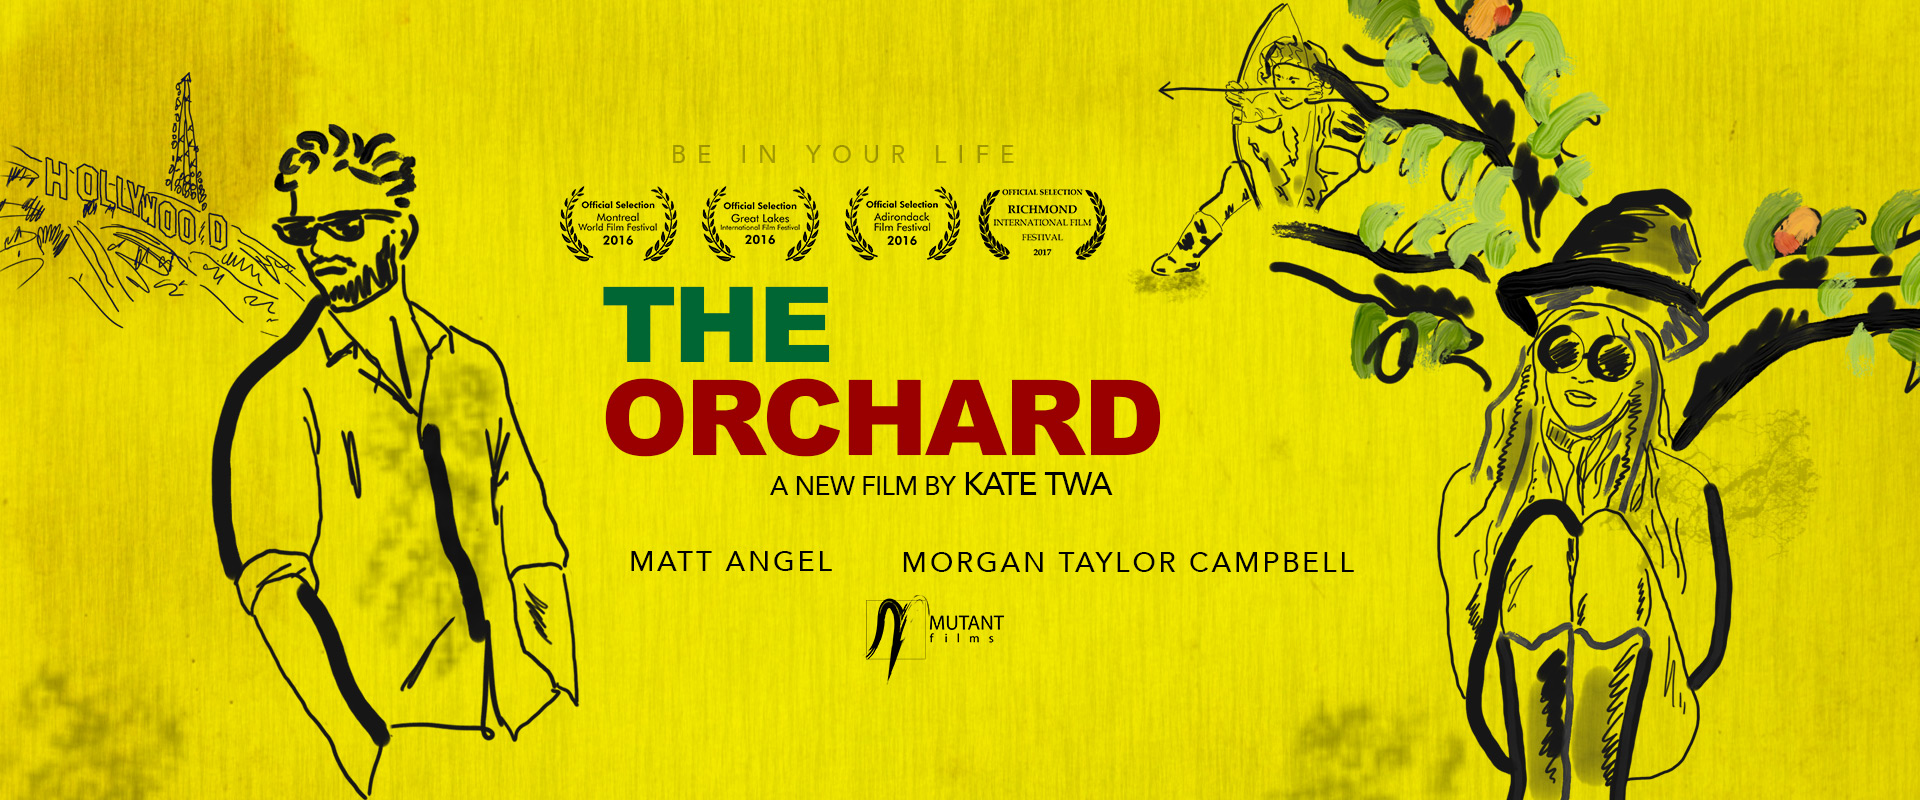 Orchard-Poster-Wide.jpg